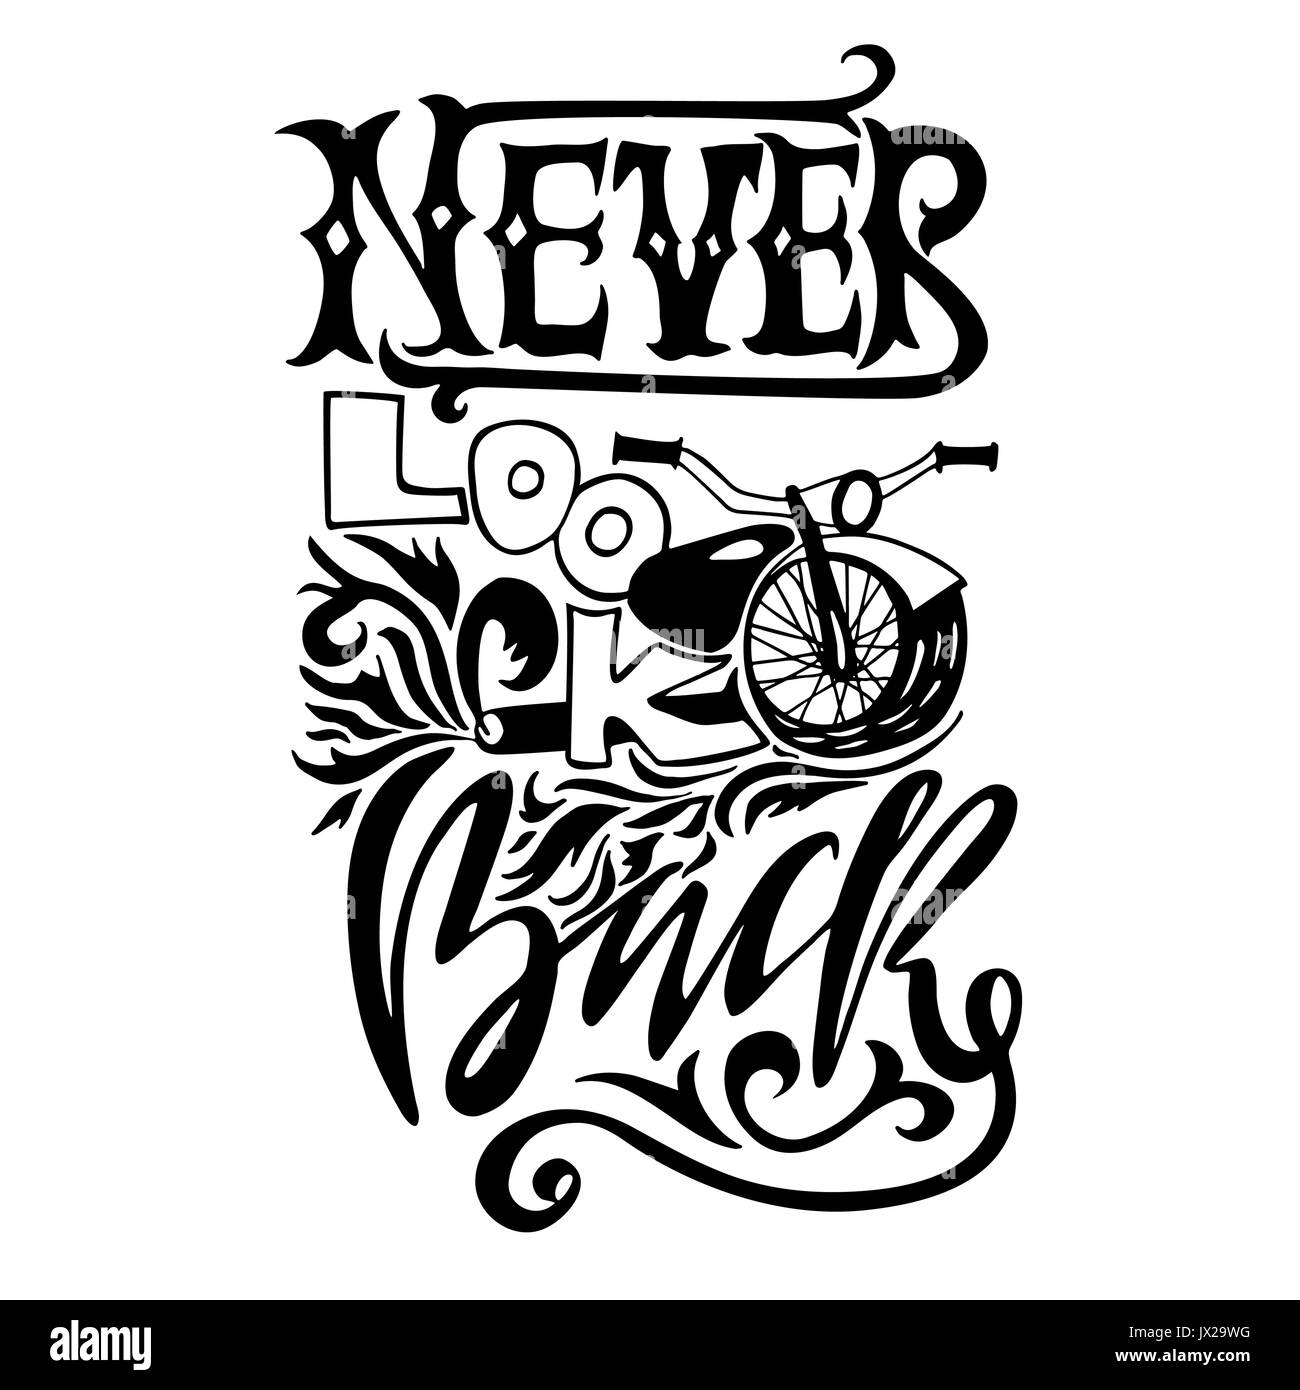 Never look back Hand drawn lettering Vector motivational